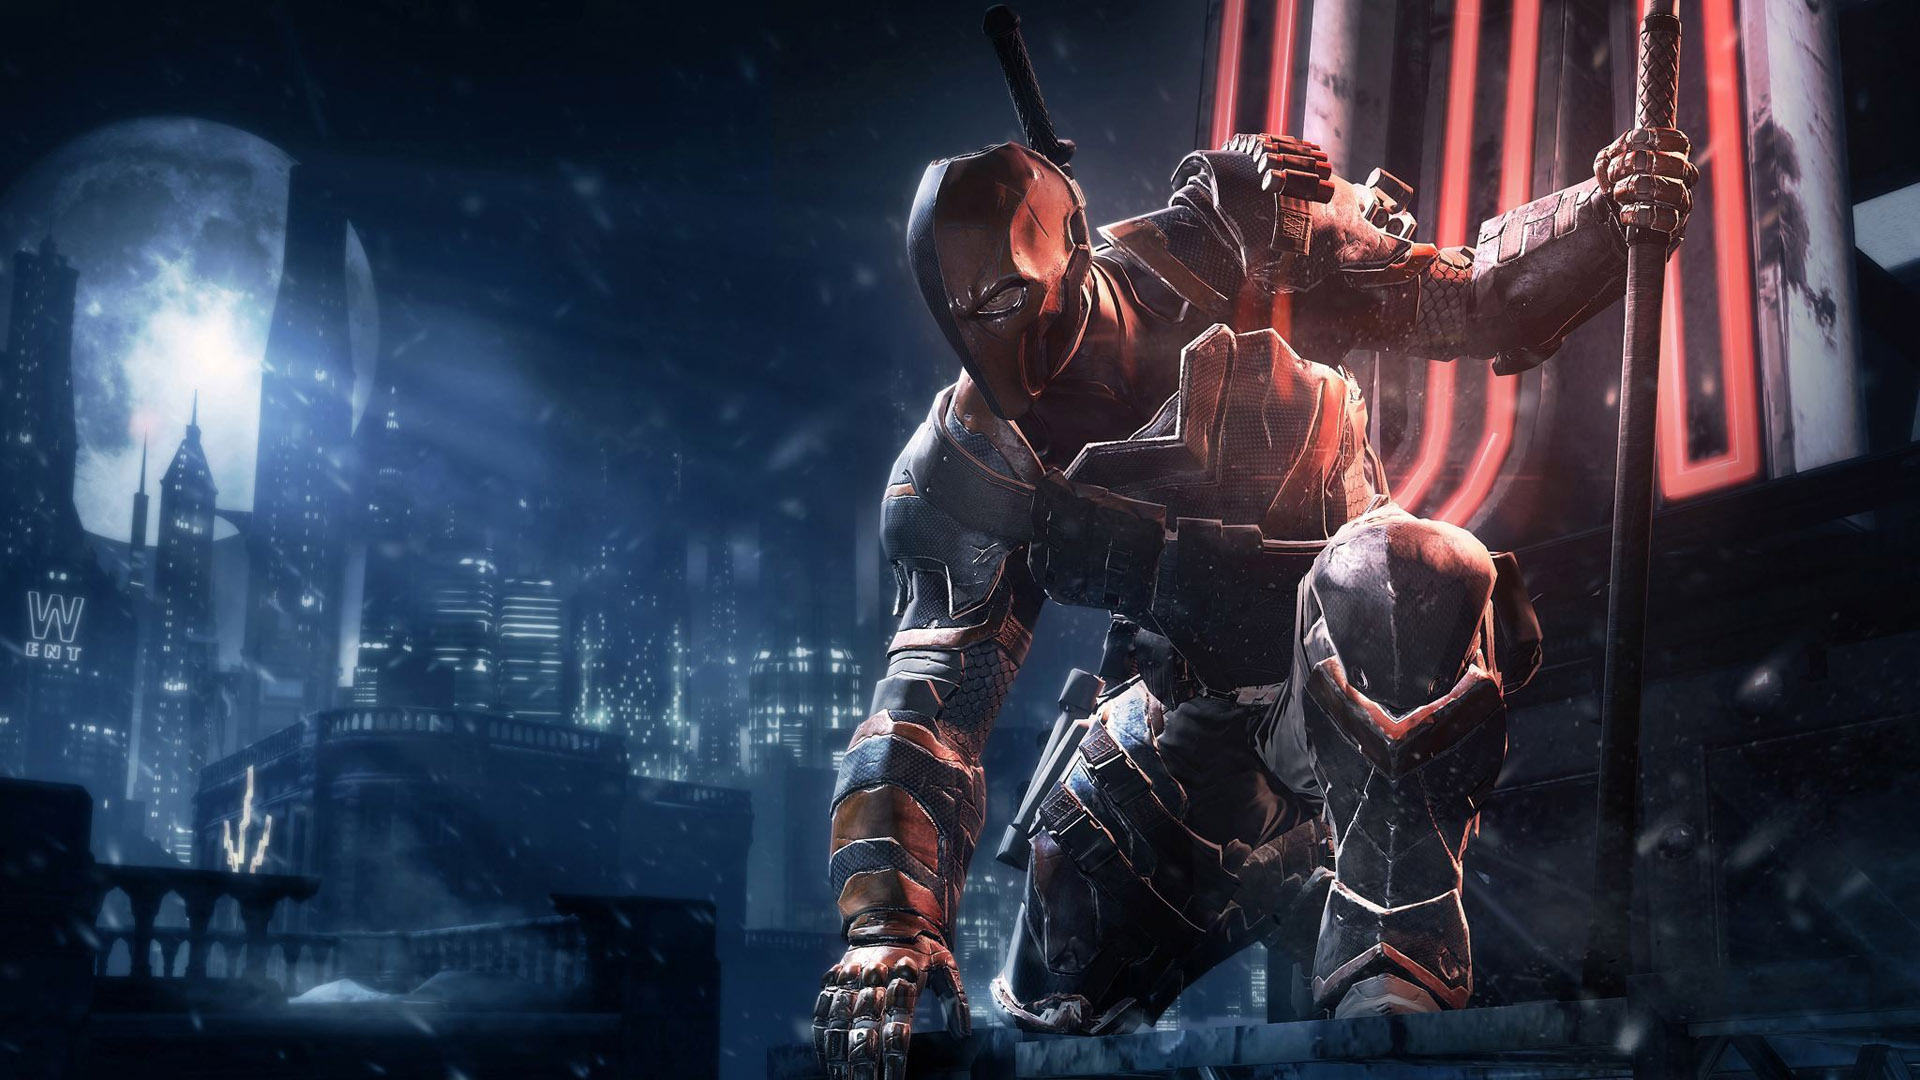 Deathstroke   Batman   Arkham Origins wallpaper 14833 1920x1080